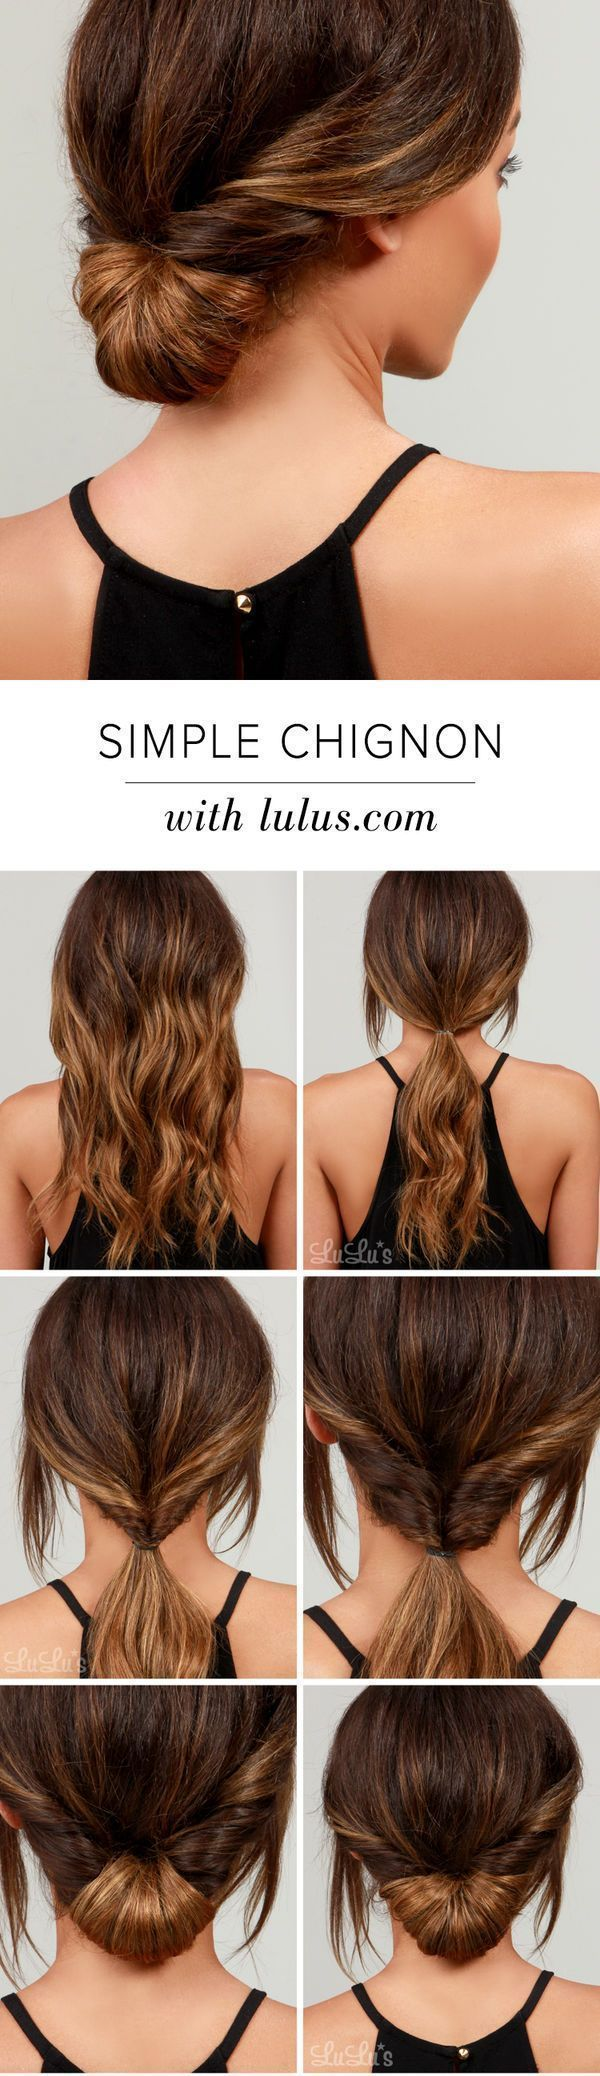 Try this simple chignon bridal updo tutorial to achieve an easy bridal hairstyle! #ad